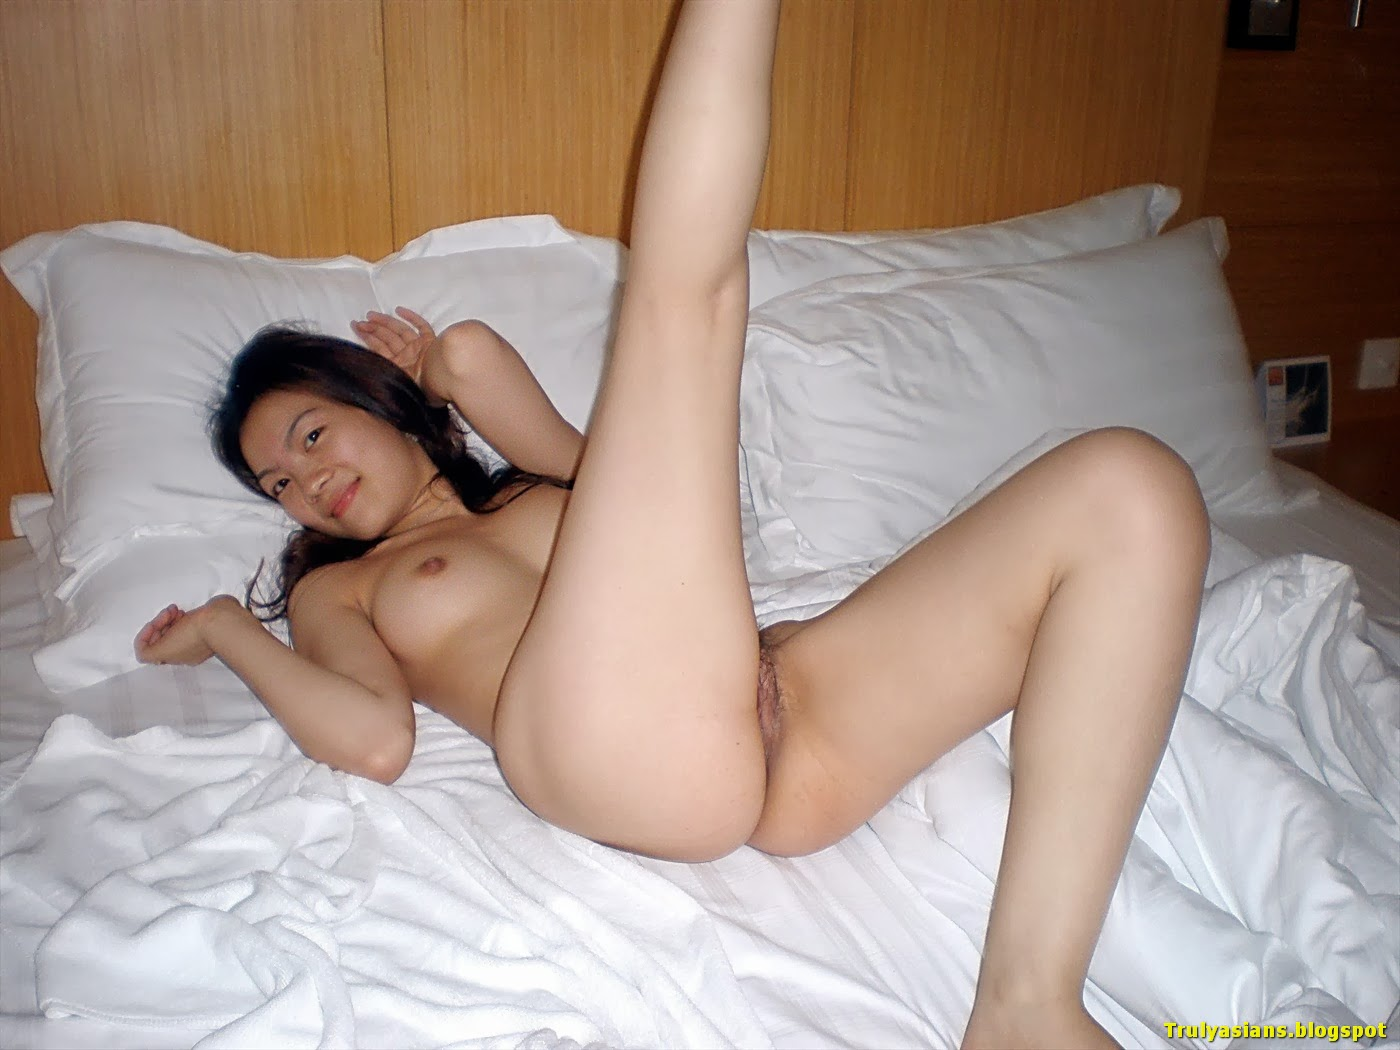 china naked gf's Amateur Chinese Girlfriend Posing Nude and Spreading in Hotel (50 pics) |  Sexy Girl Korean